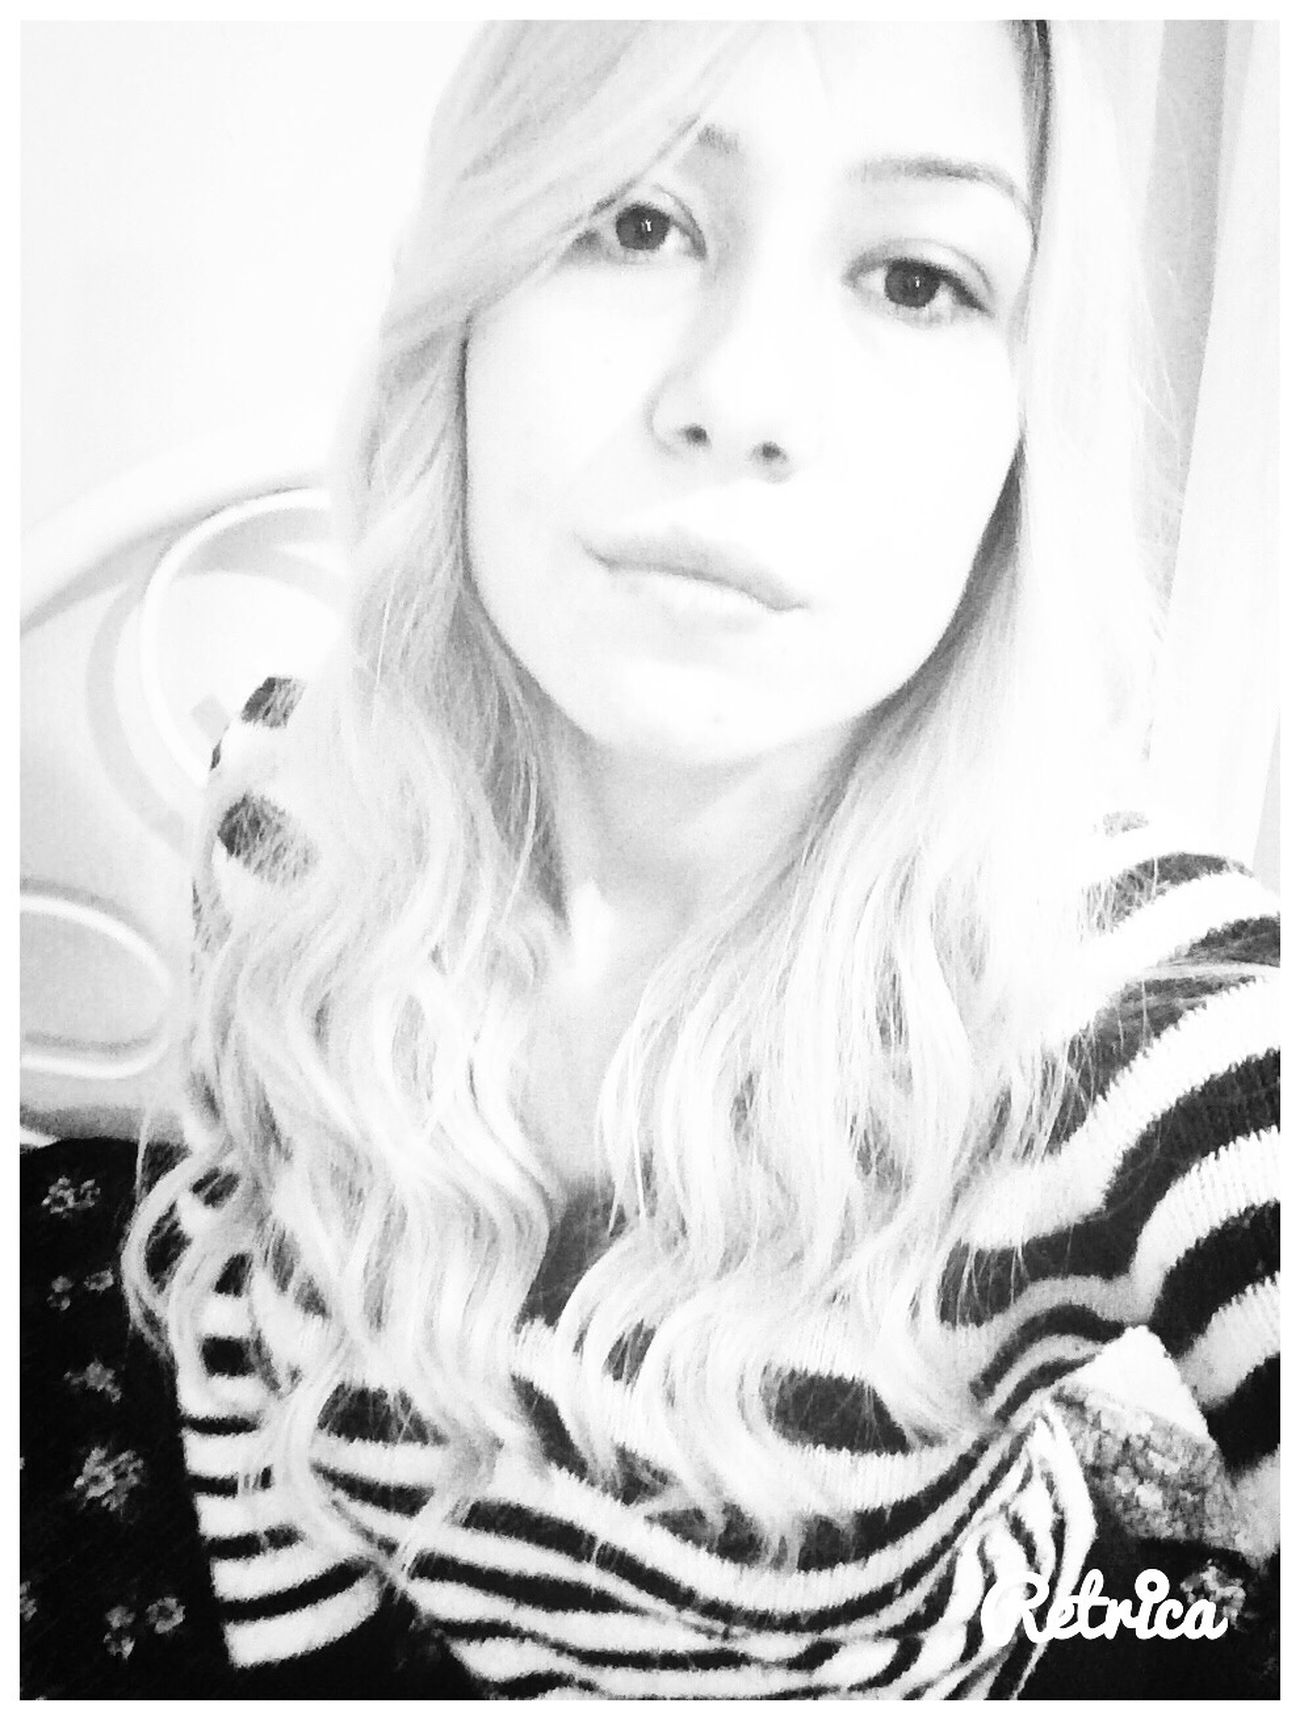 Hastayım ? Blonde Tired! Today's Hot Look That's Me